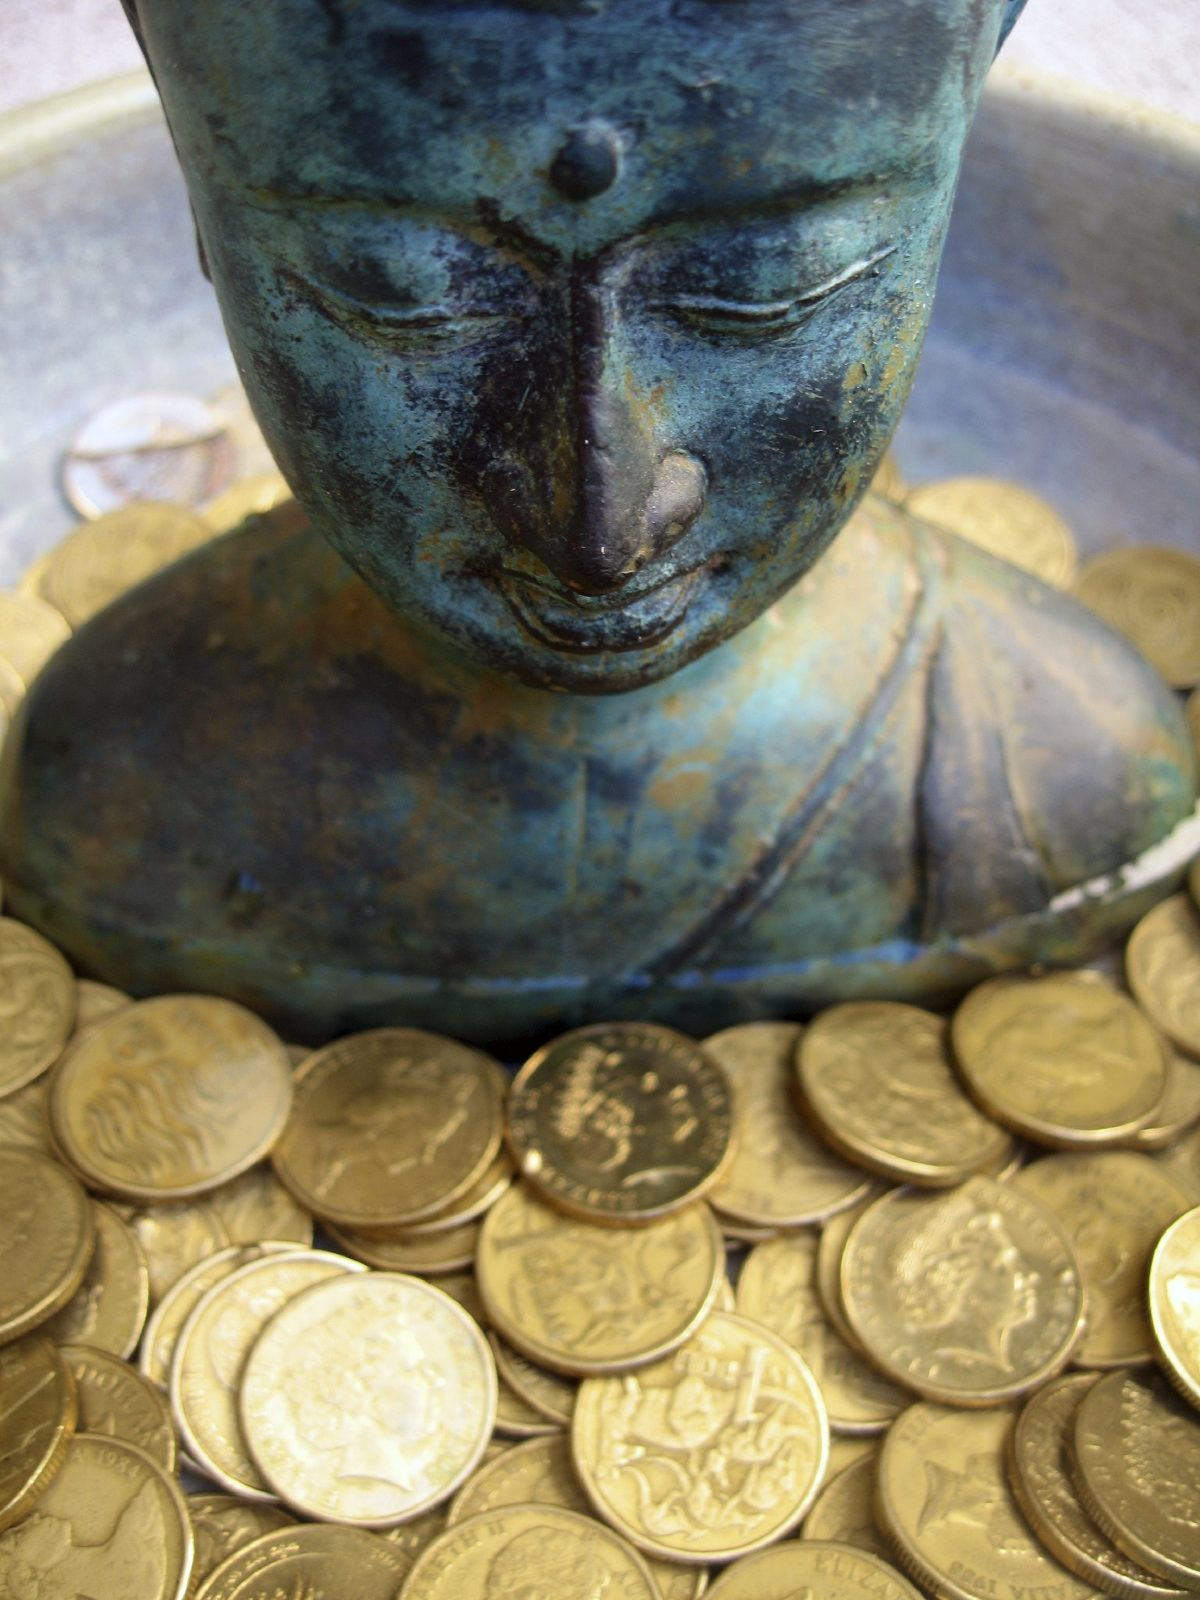 Conscious commerce: Put your money where your beliefs are